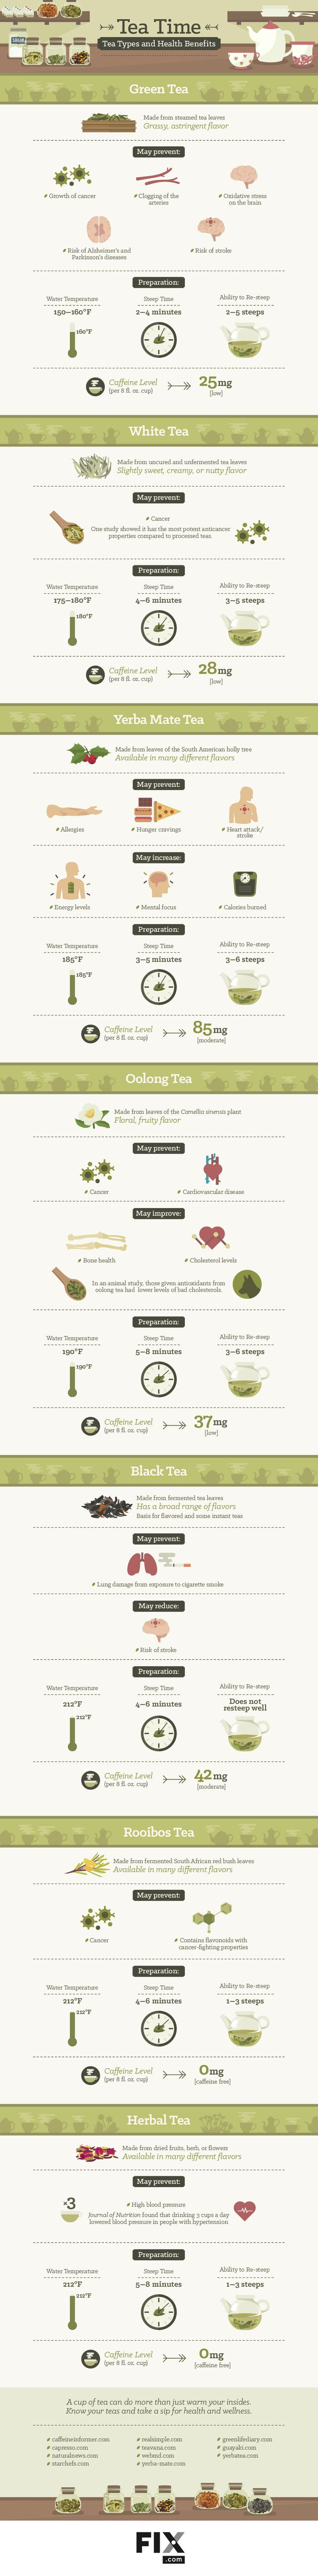 Tea Time Types of Tea and Their Health Benefits #infographic ~ Visualistan Come and see our new website at bakedcomfortfood.com!